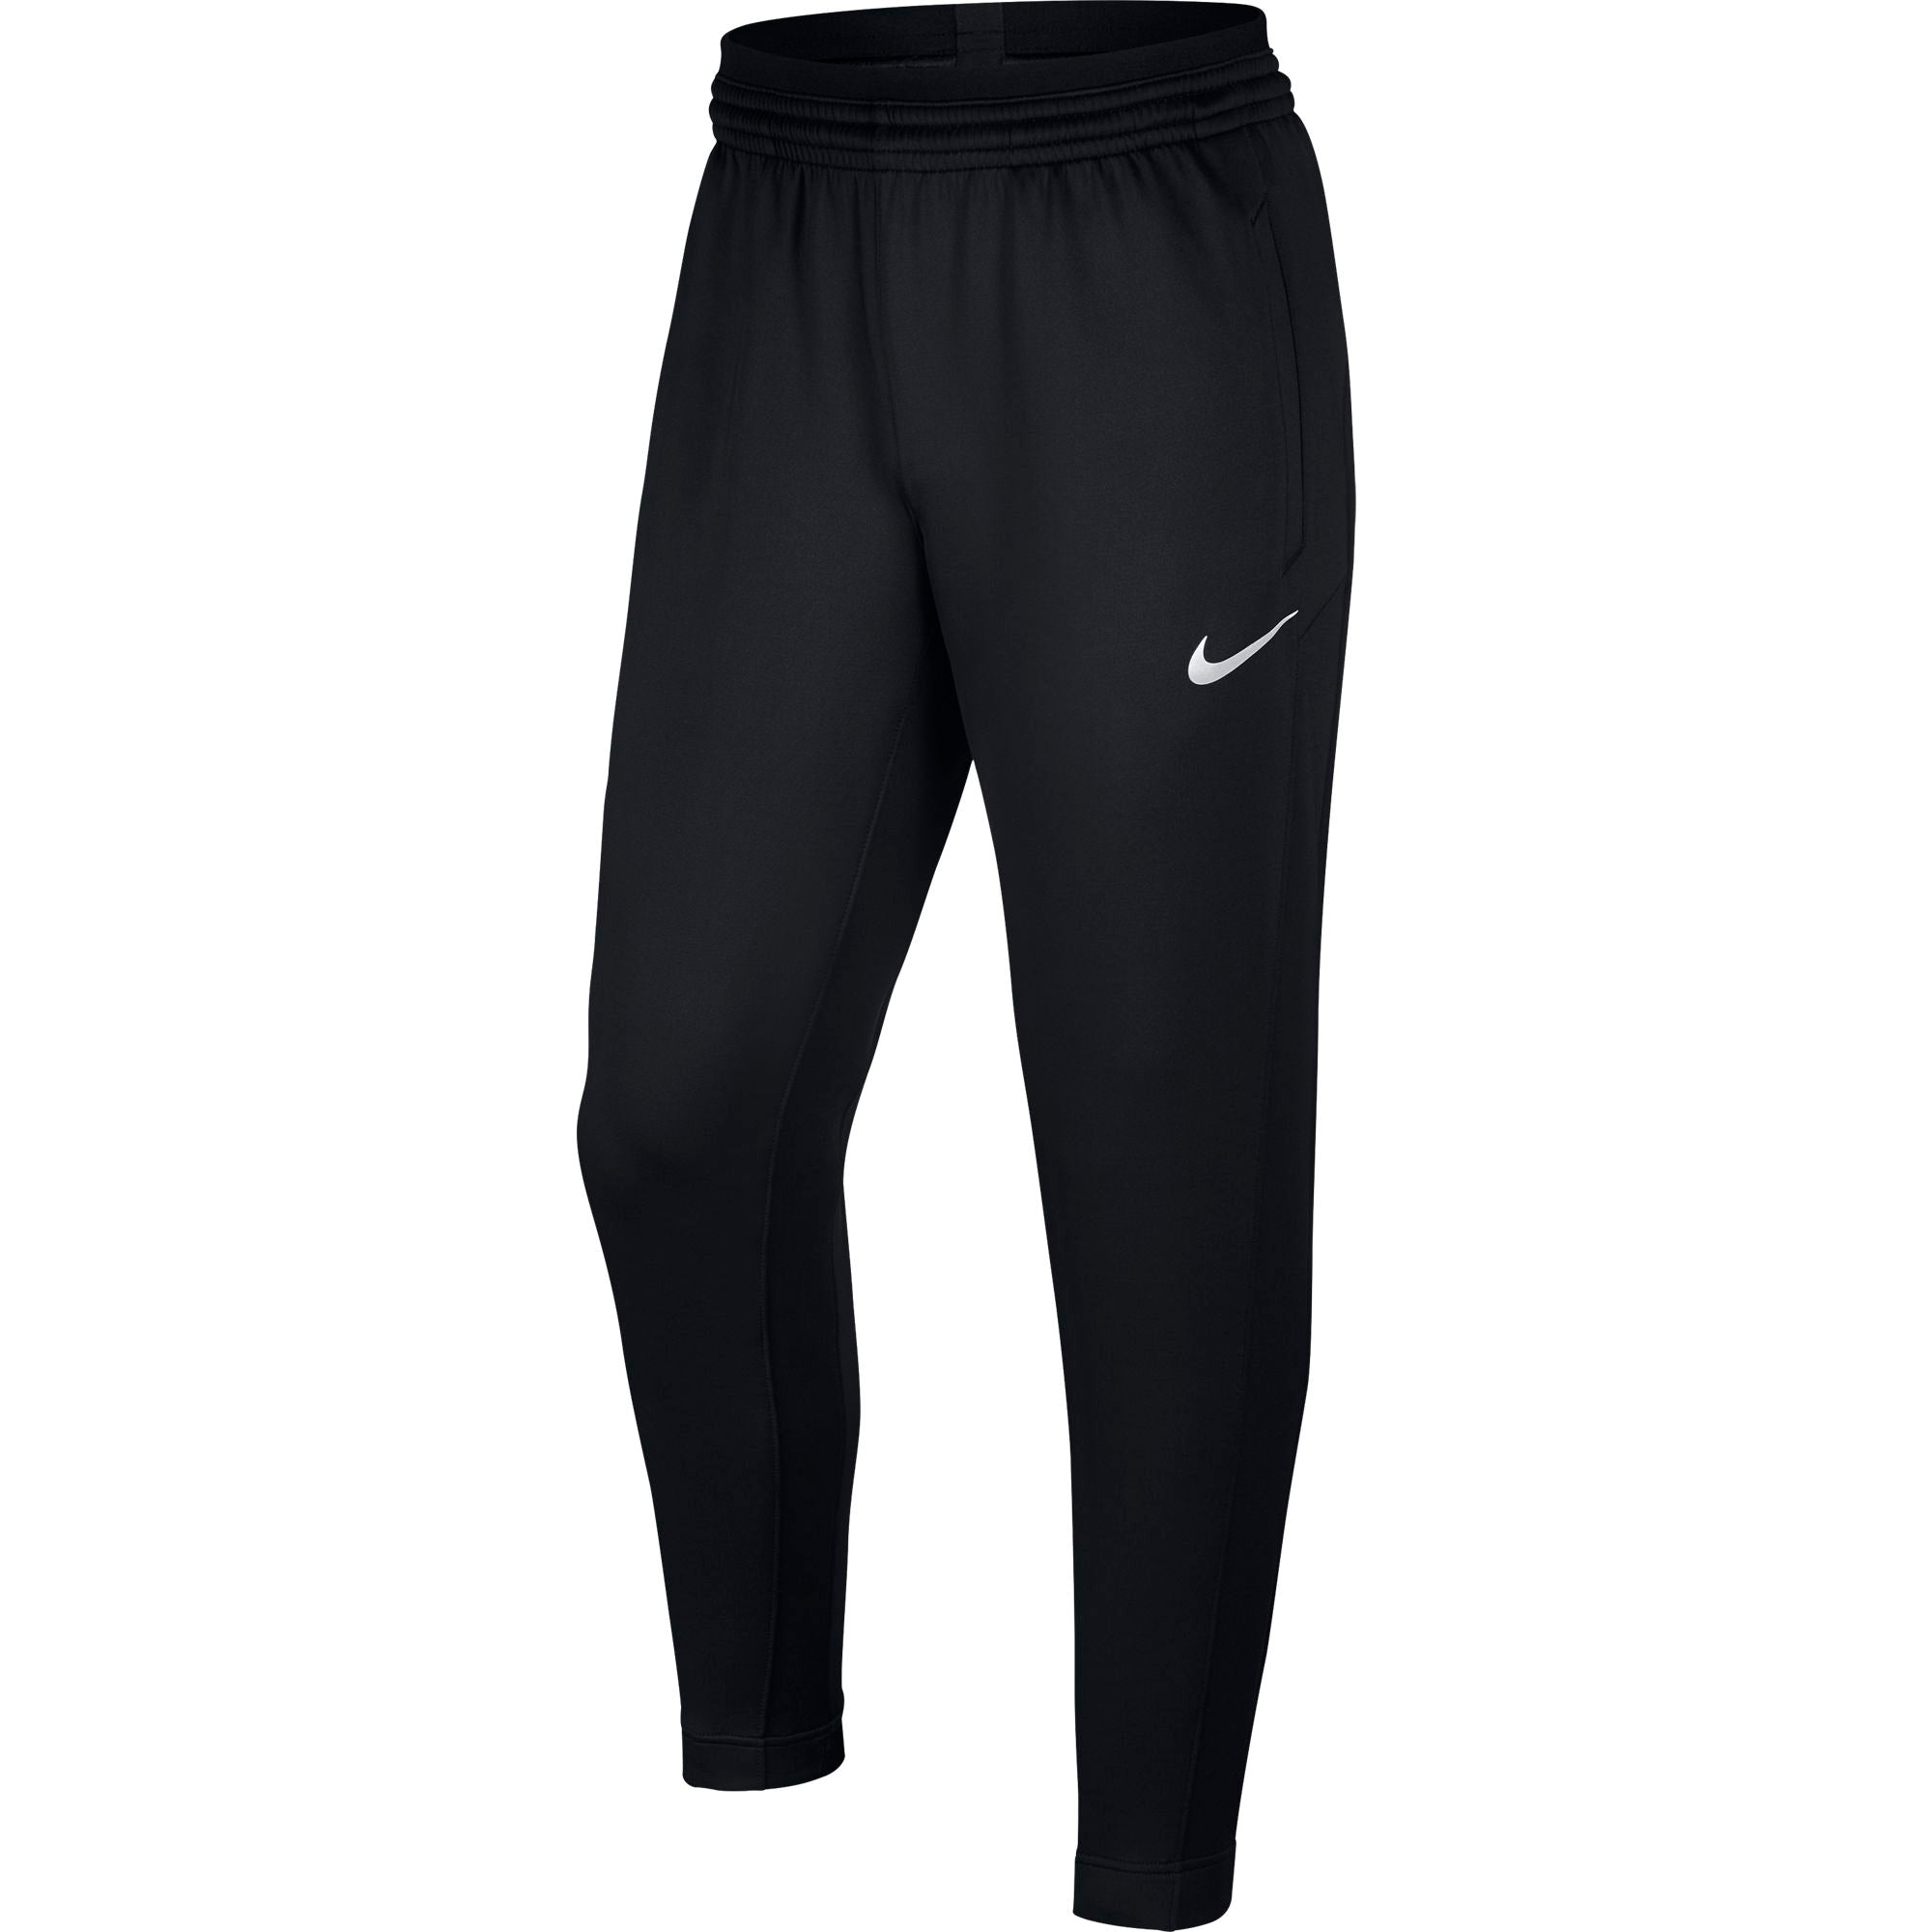 Nike Basketball Therma Flex Showtime Pants - NK-856442-010